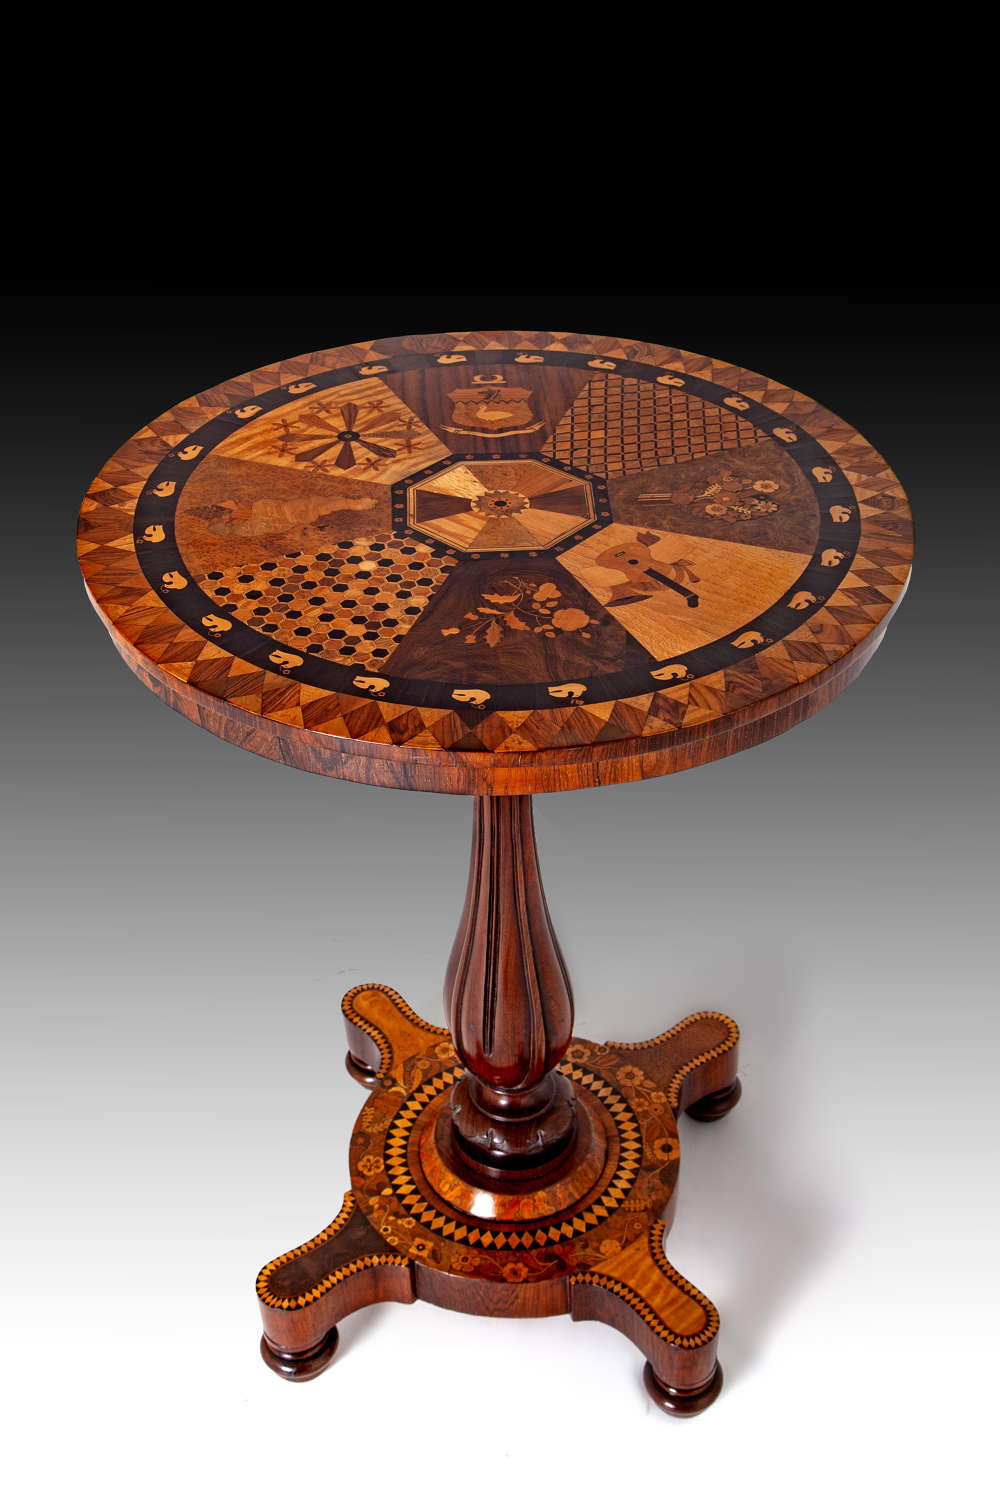 A rare early 19th century West Indian specimen wood table